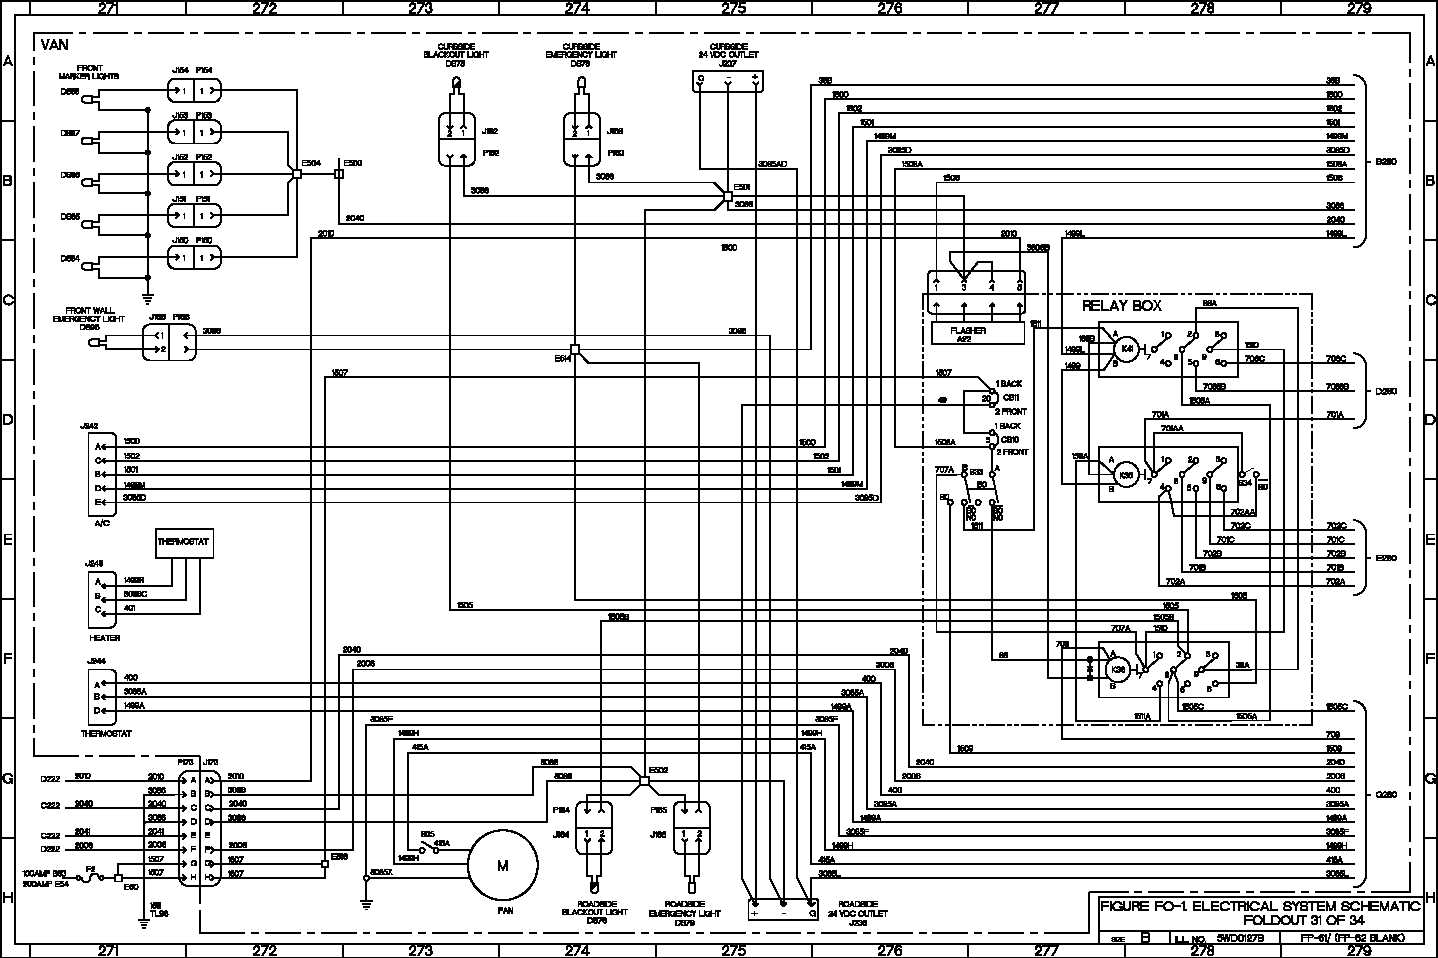 TM 9 2320 365 20 2_1351_1 electrical system schematic tm 9 2320 365 20 2_1351 wiring diagram for m1078 lmtv at alyssarenee.co